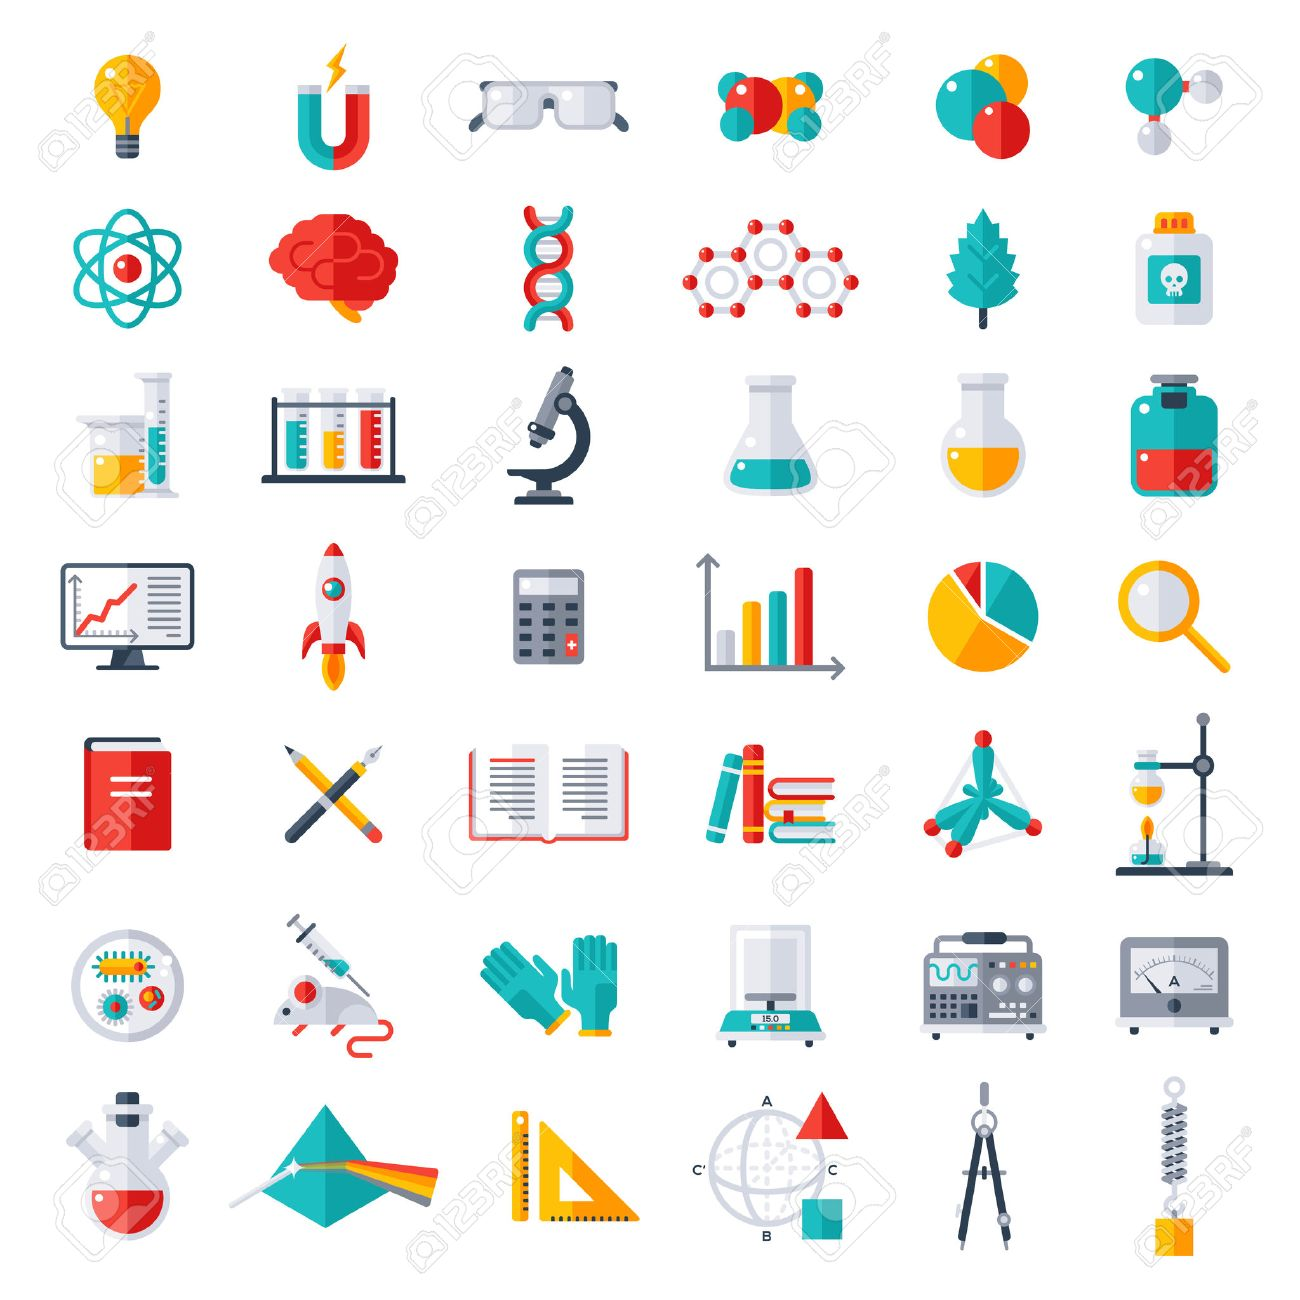 Physics, Chemistry and Biology, laboratory and science equipment Icons Set. Flat design vector illustration. Latex Gloves. Molecules, Data Analysis. Scientific Research. Chemical Experiment. - 55081711